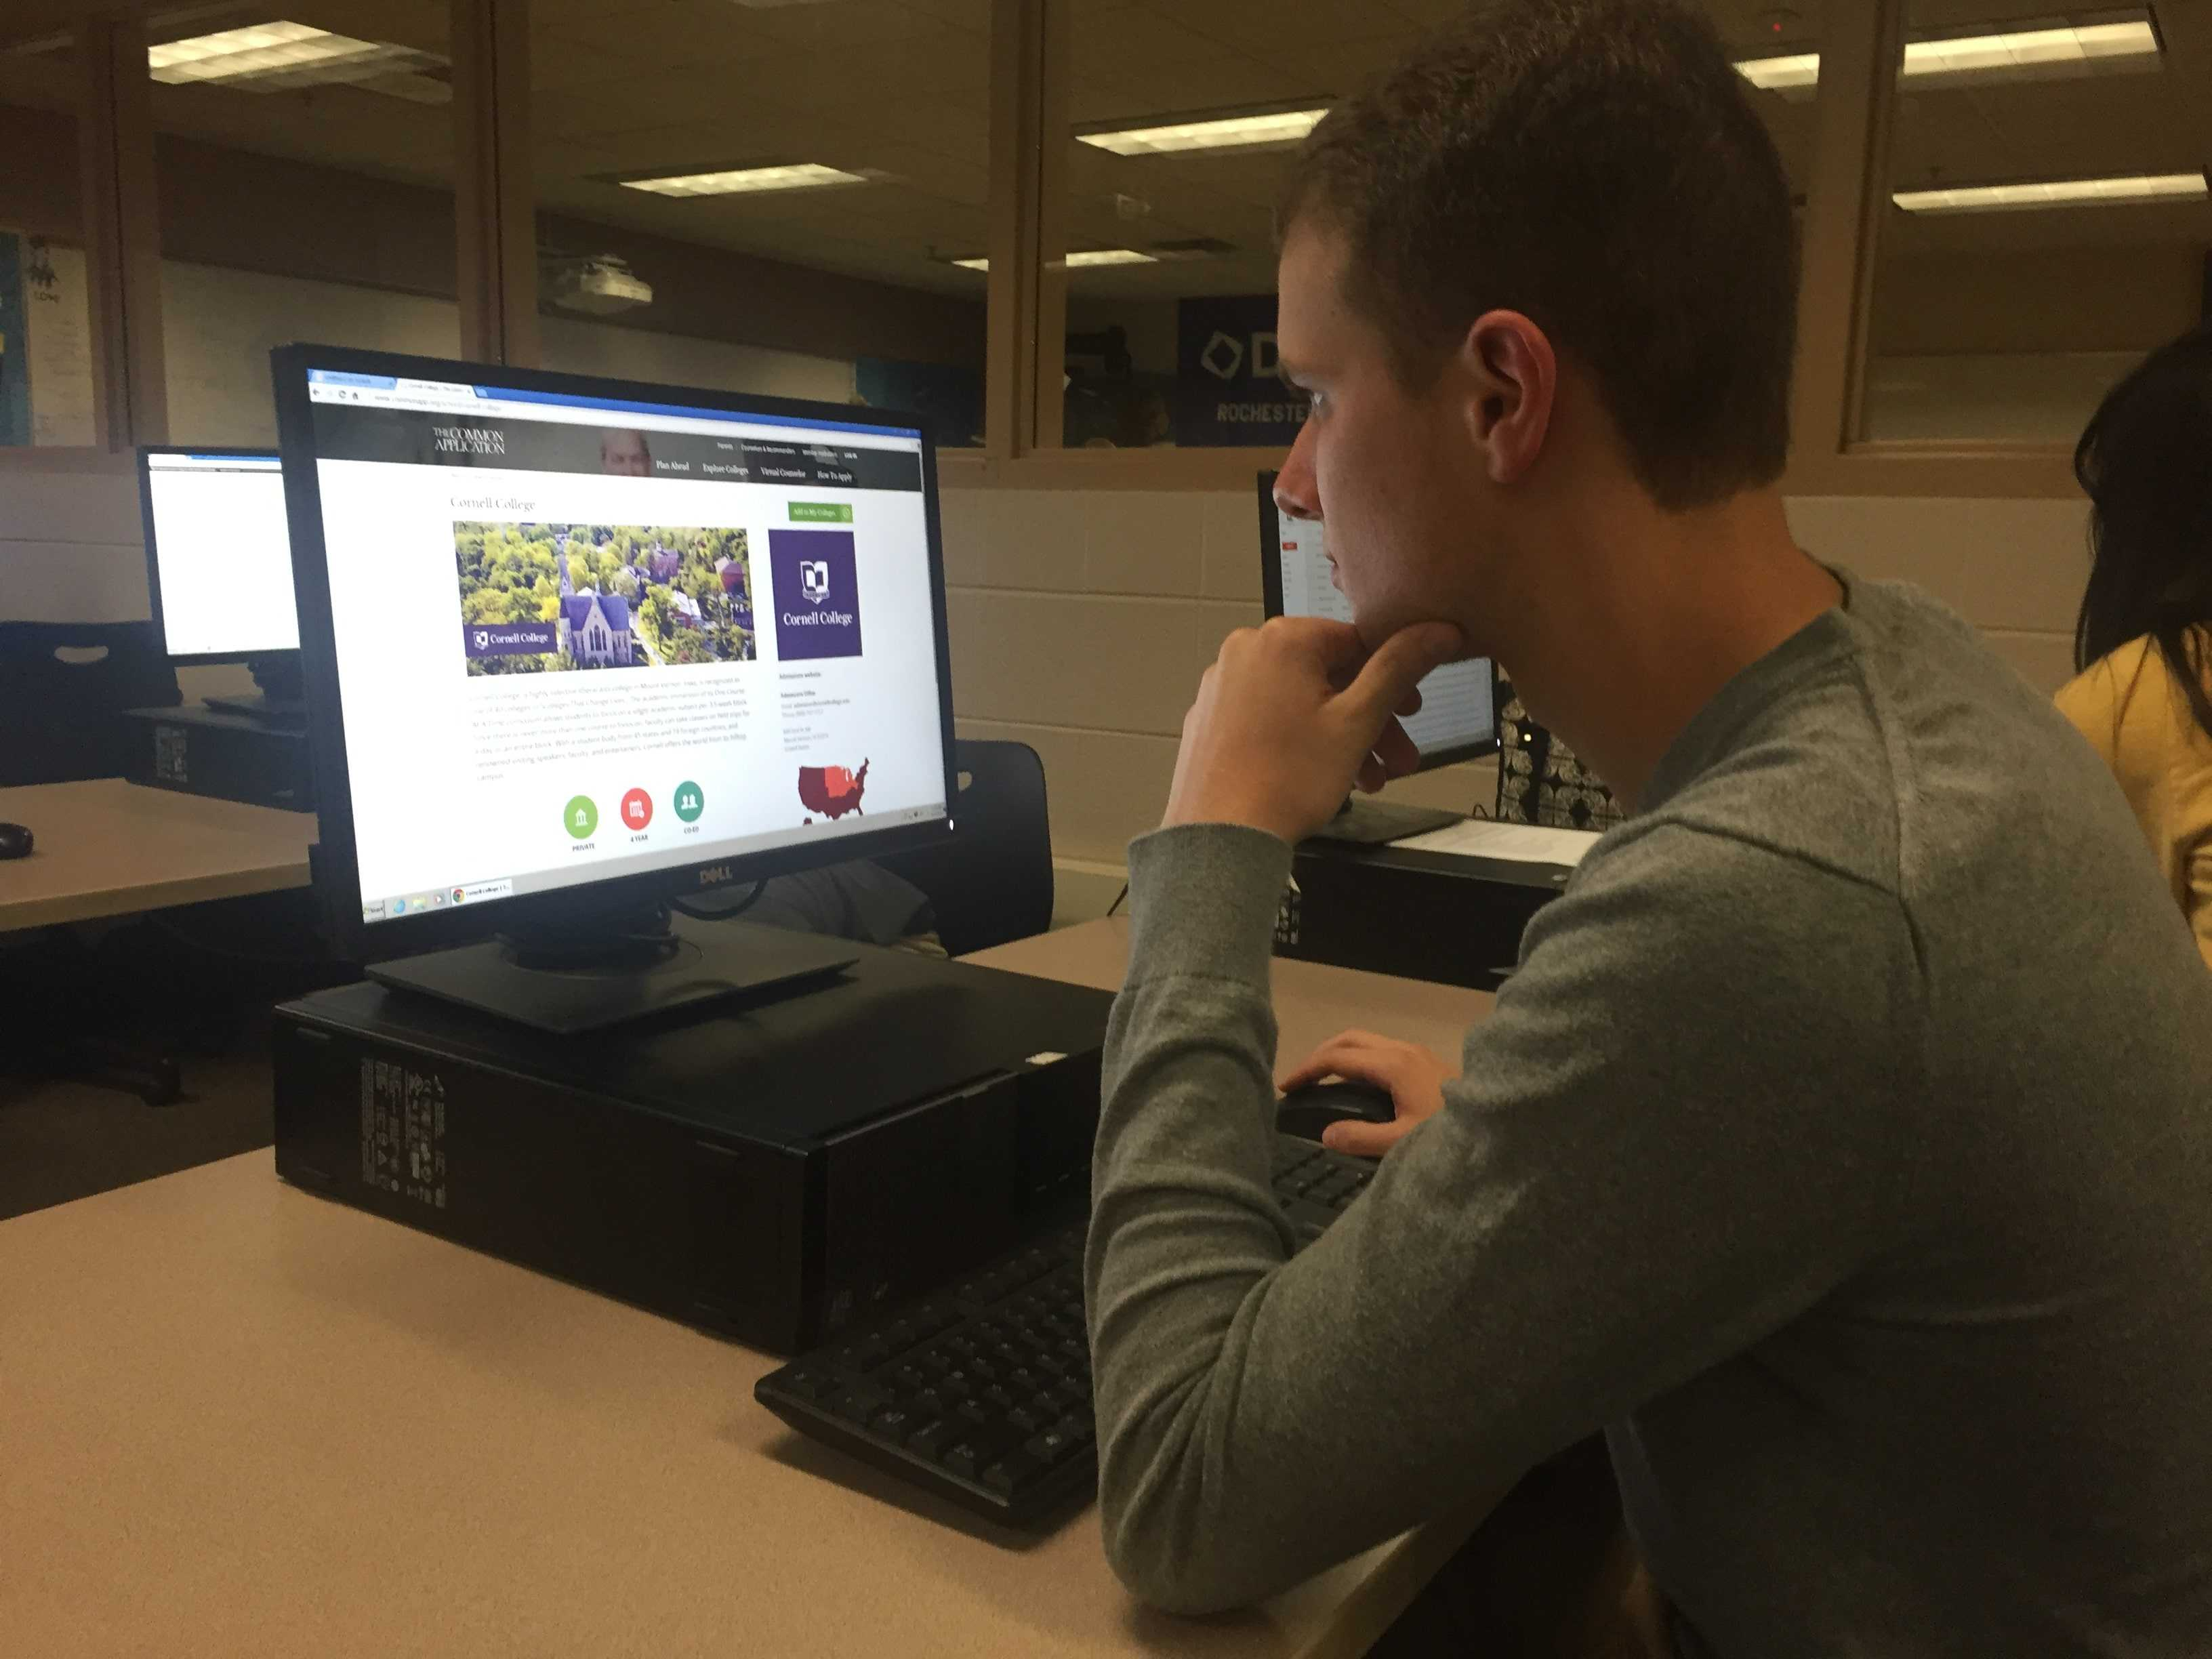 Adam Garfinkle signs onto Common App in preparation for applying to colleges.